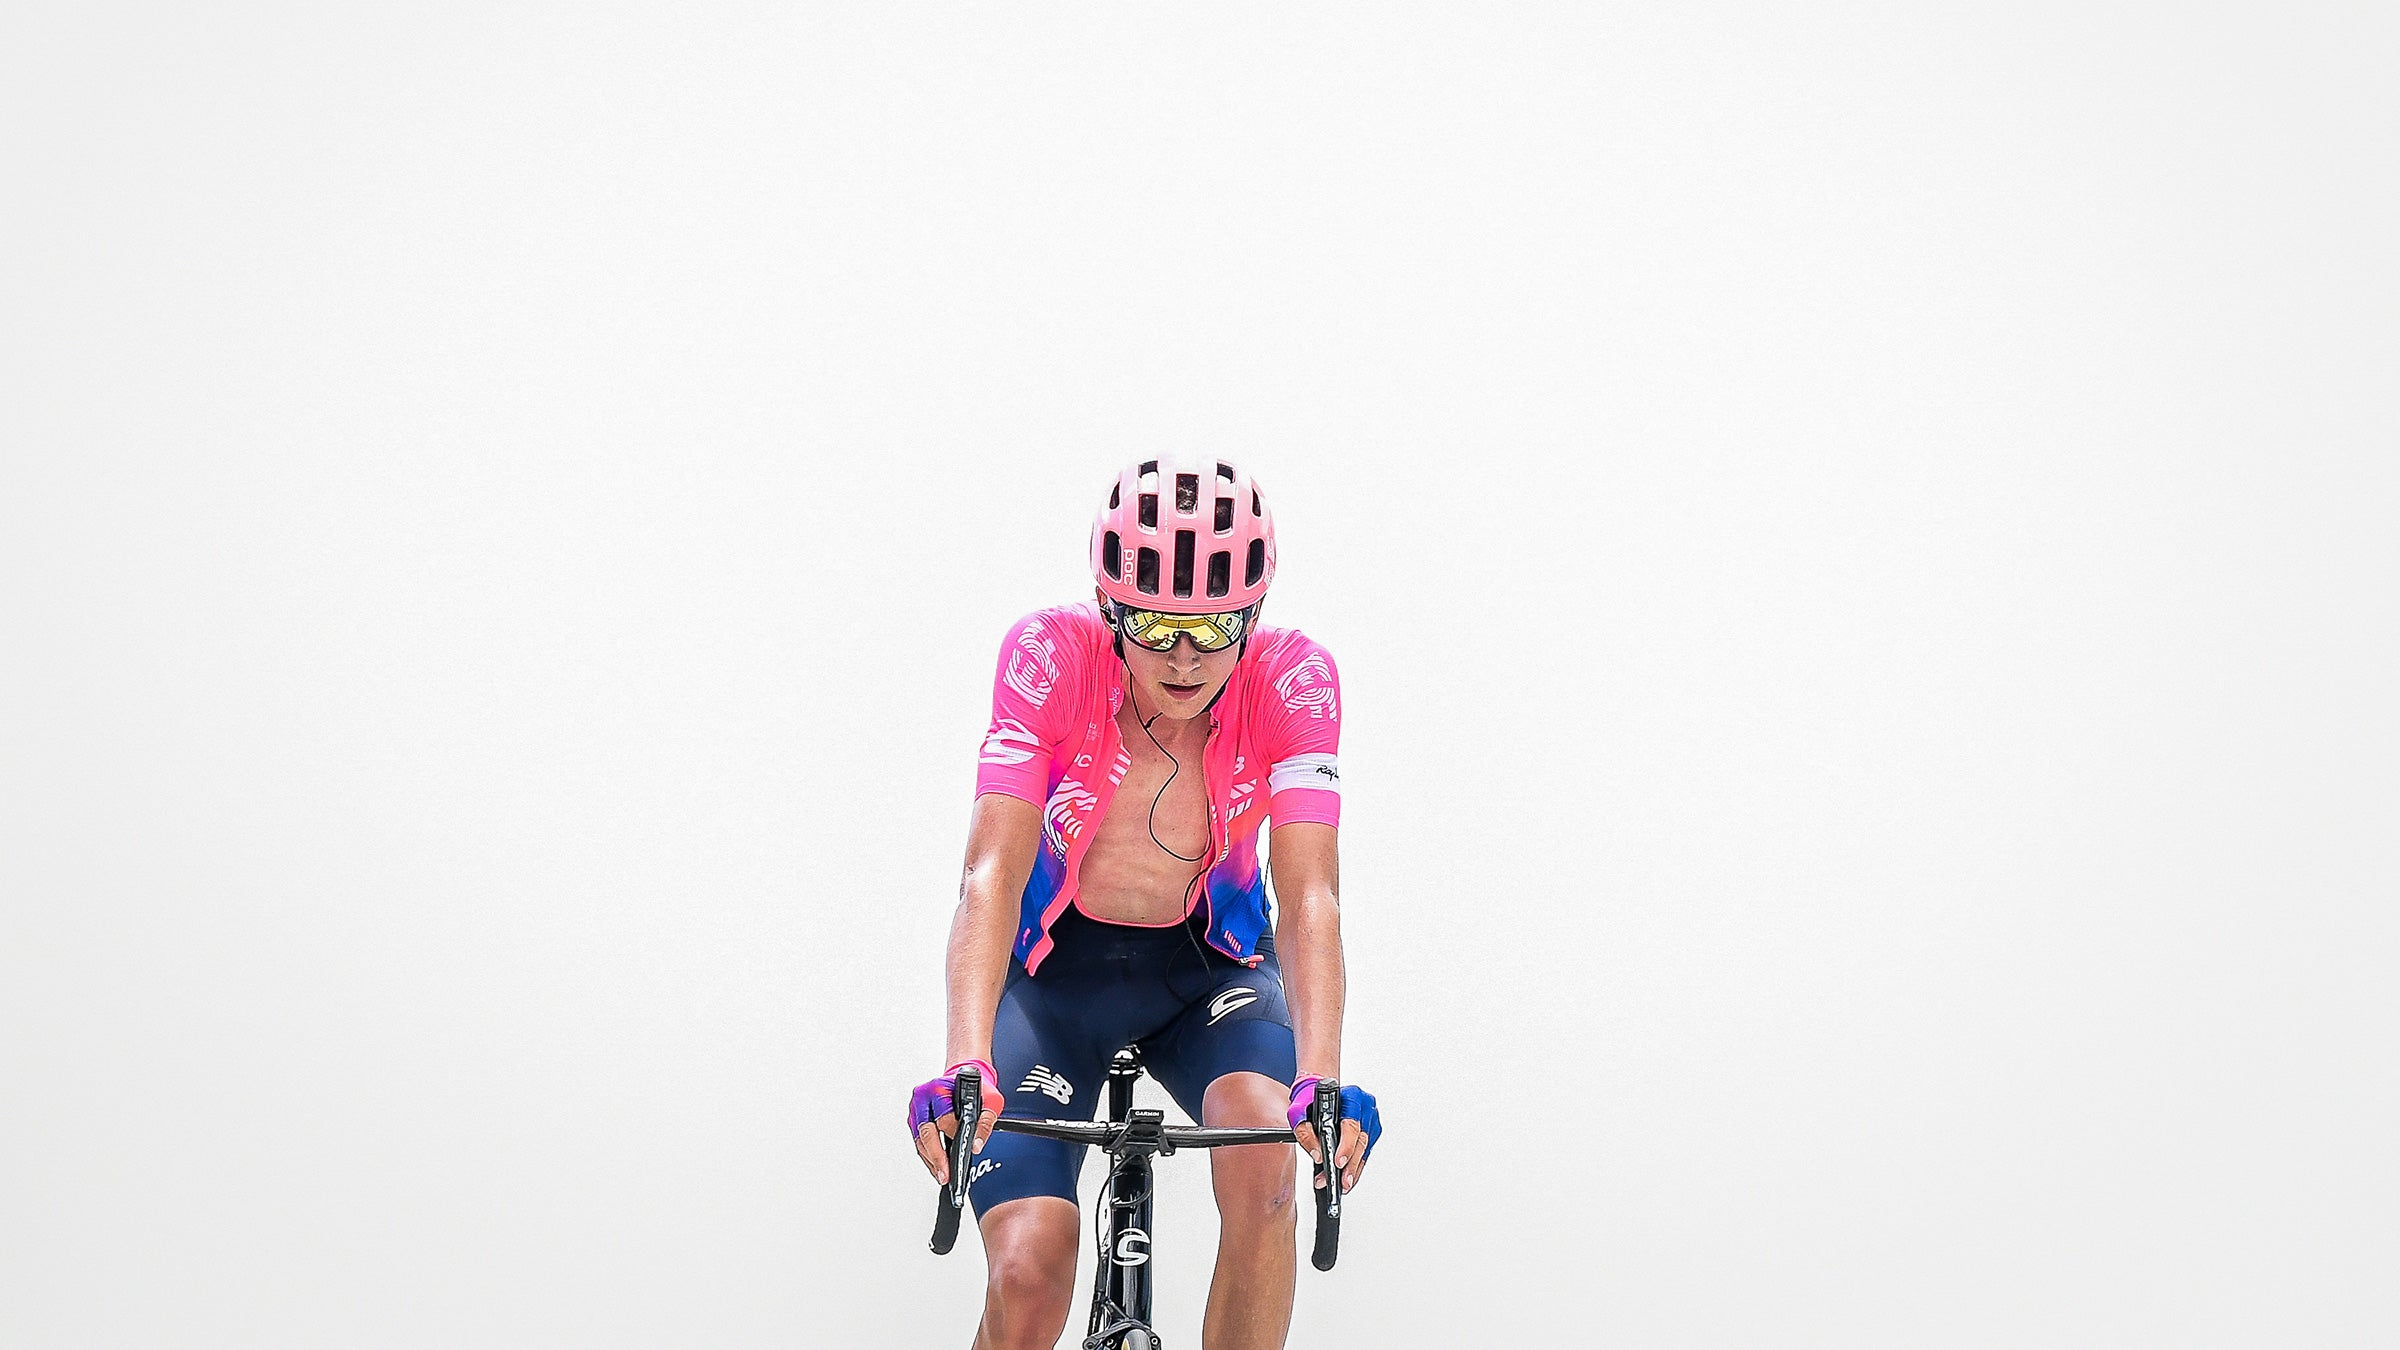 Joe Dombrowski of EF Pro Cycling at the top of Mount Ventoux